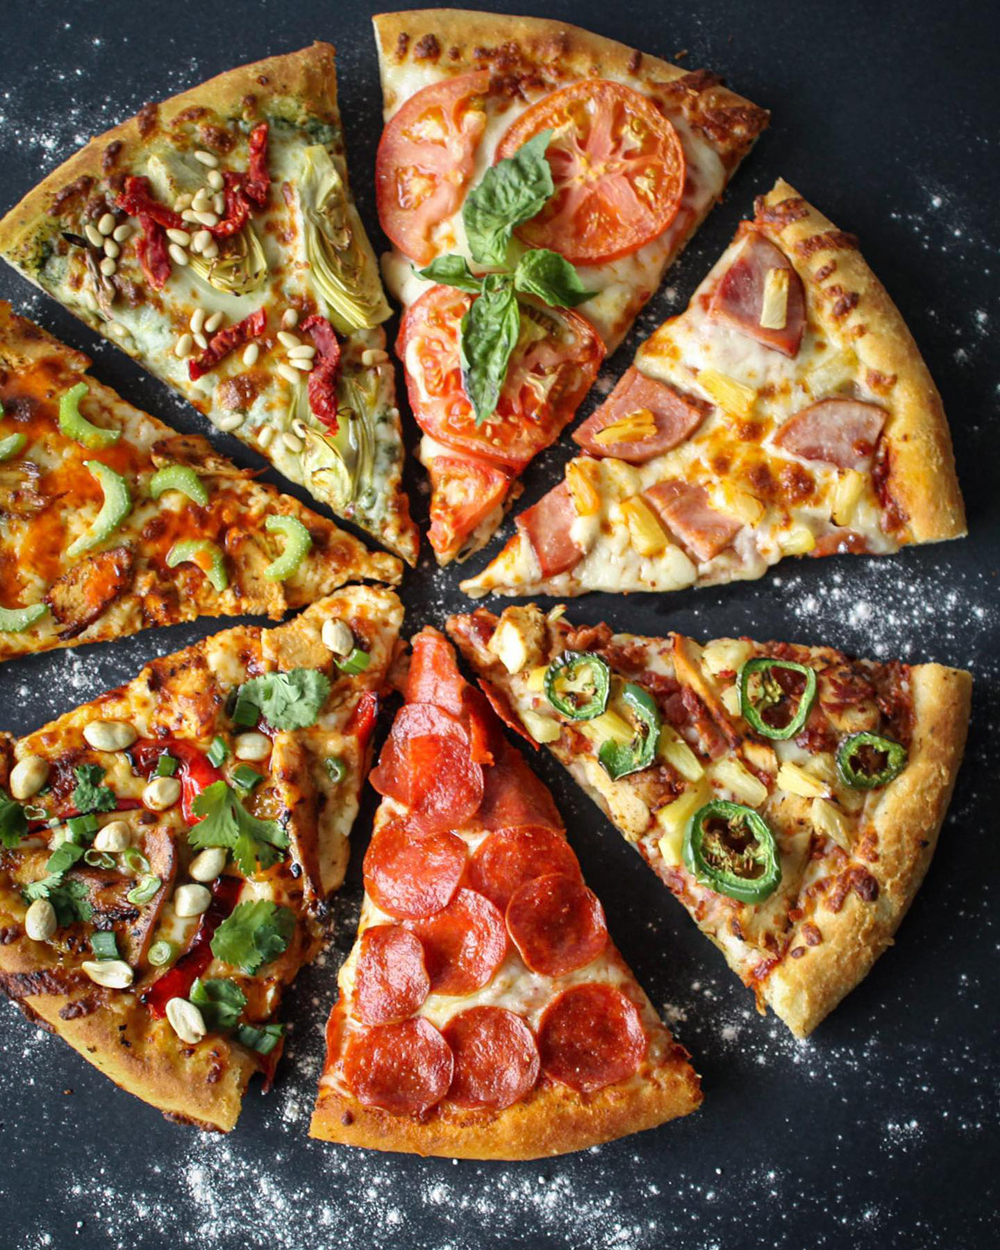 A sampler of the toppings and pizza options available at the MacKenzie River Pizza, Grill and Pub.